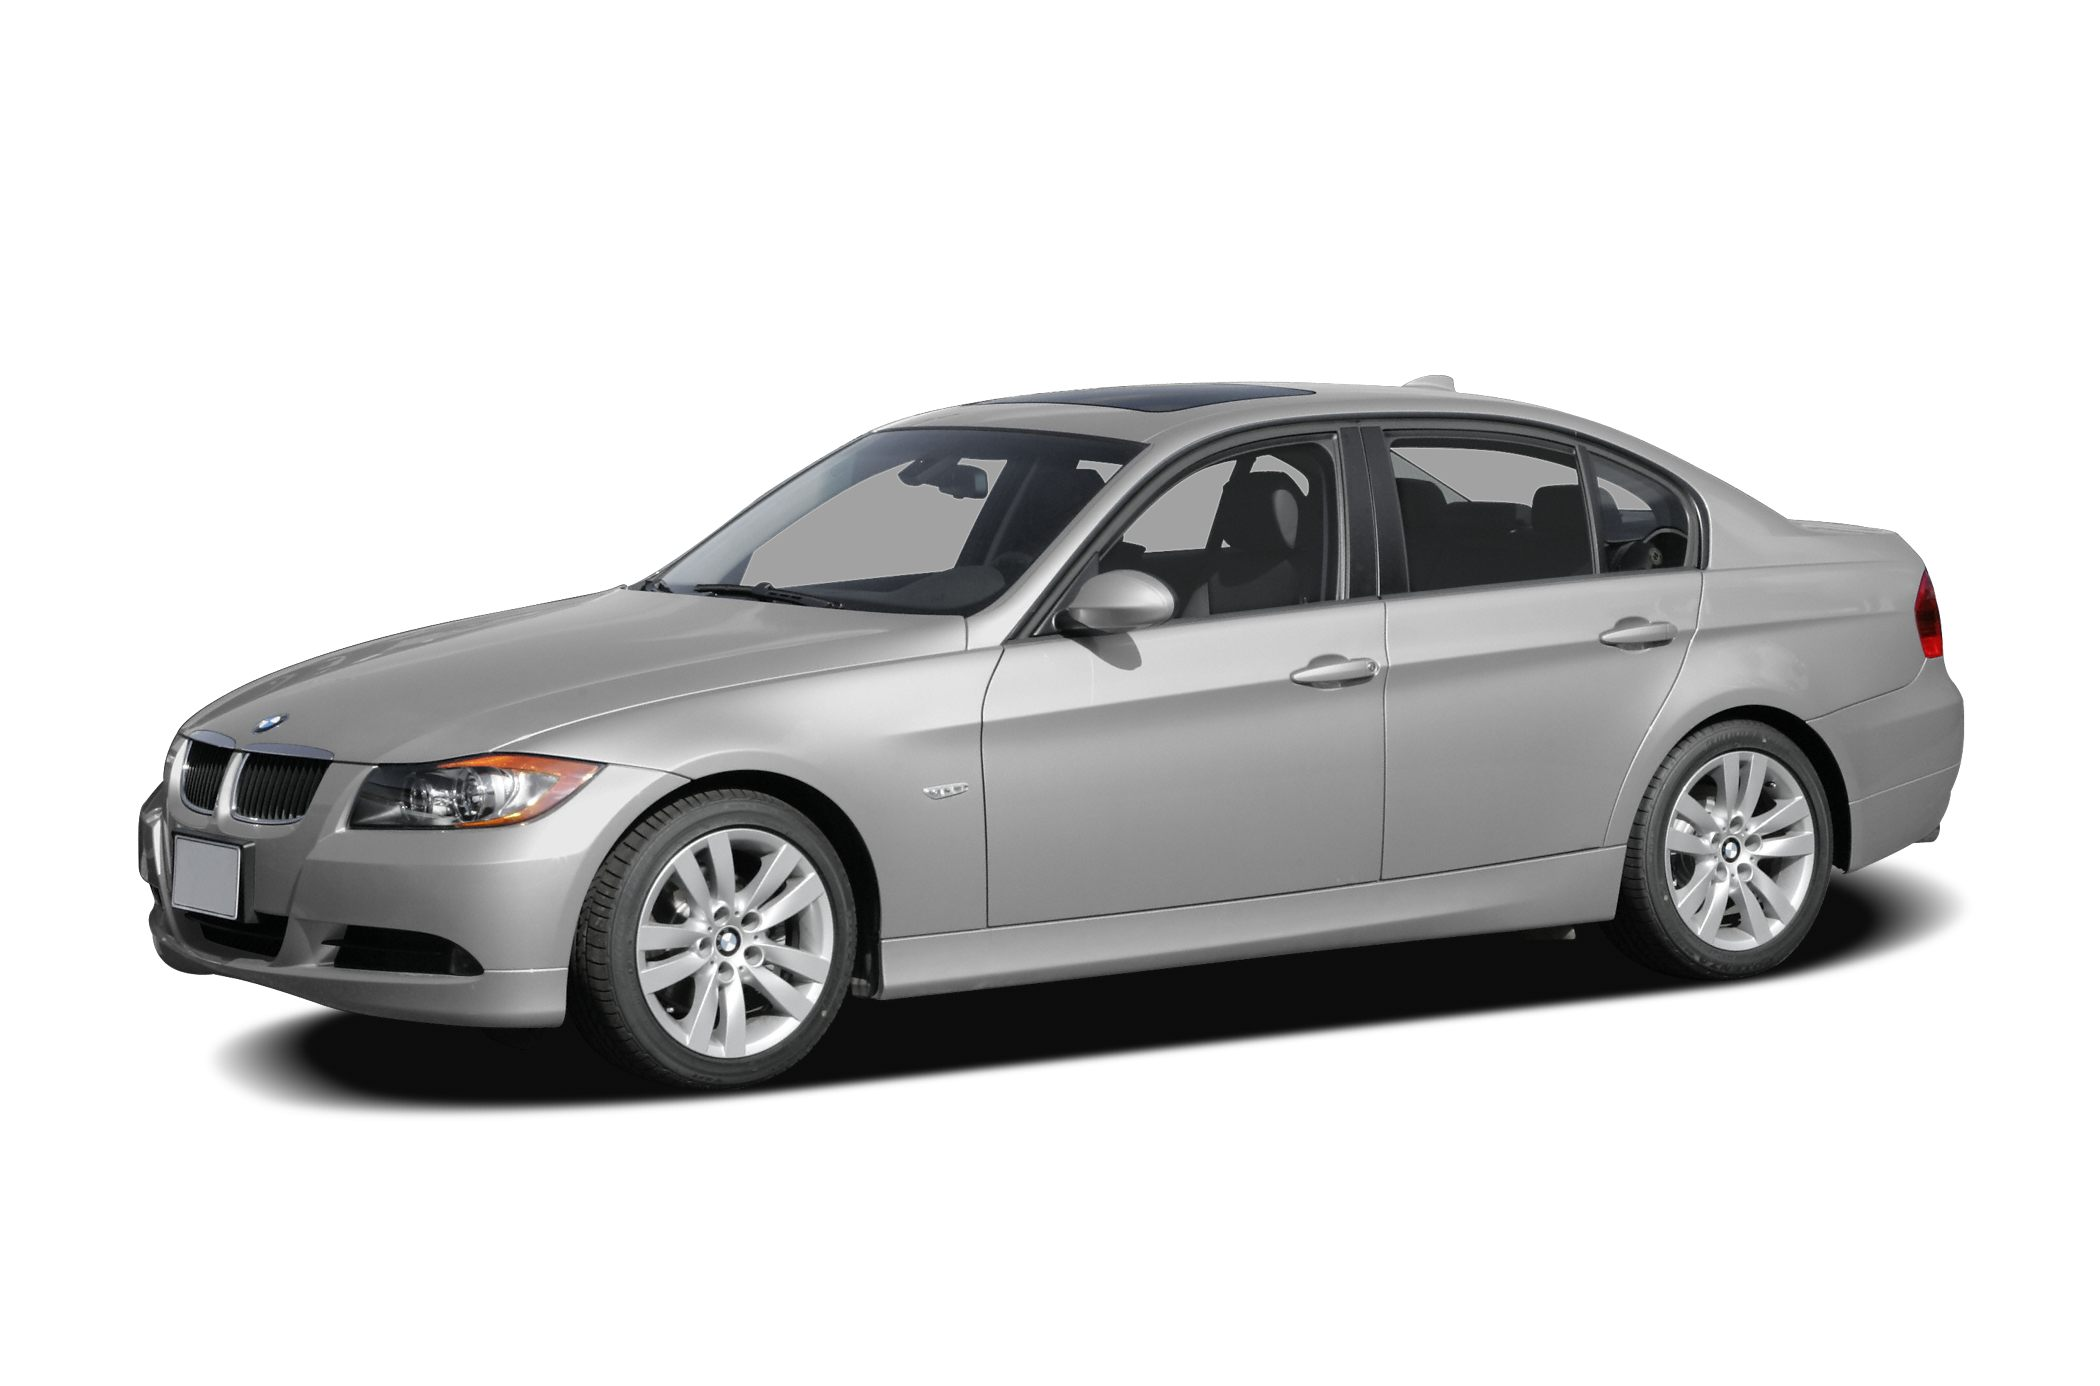 2008 BMW 328 I Coupe for sale in Charleston for $16,922 with 60,868 miles.